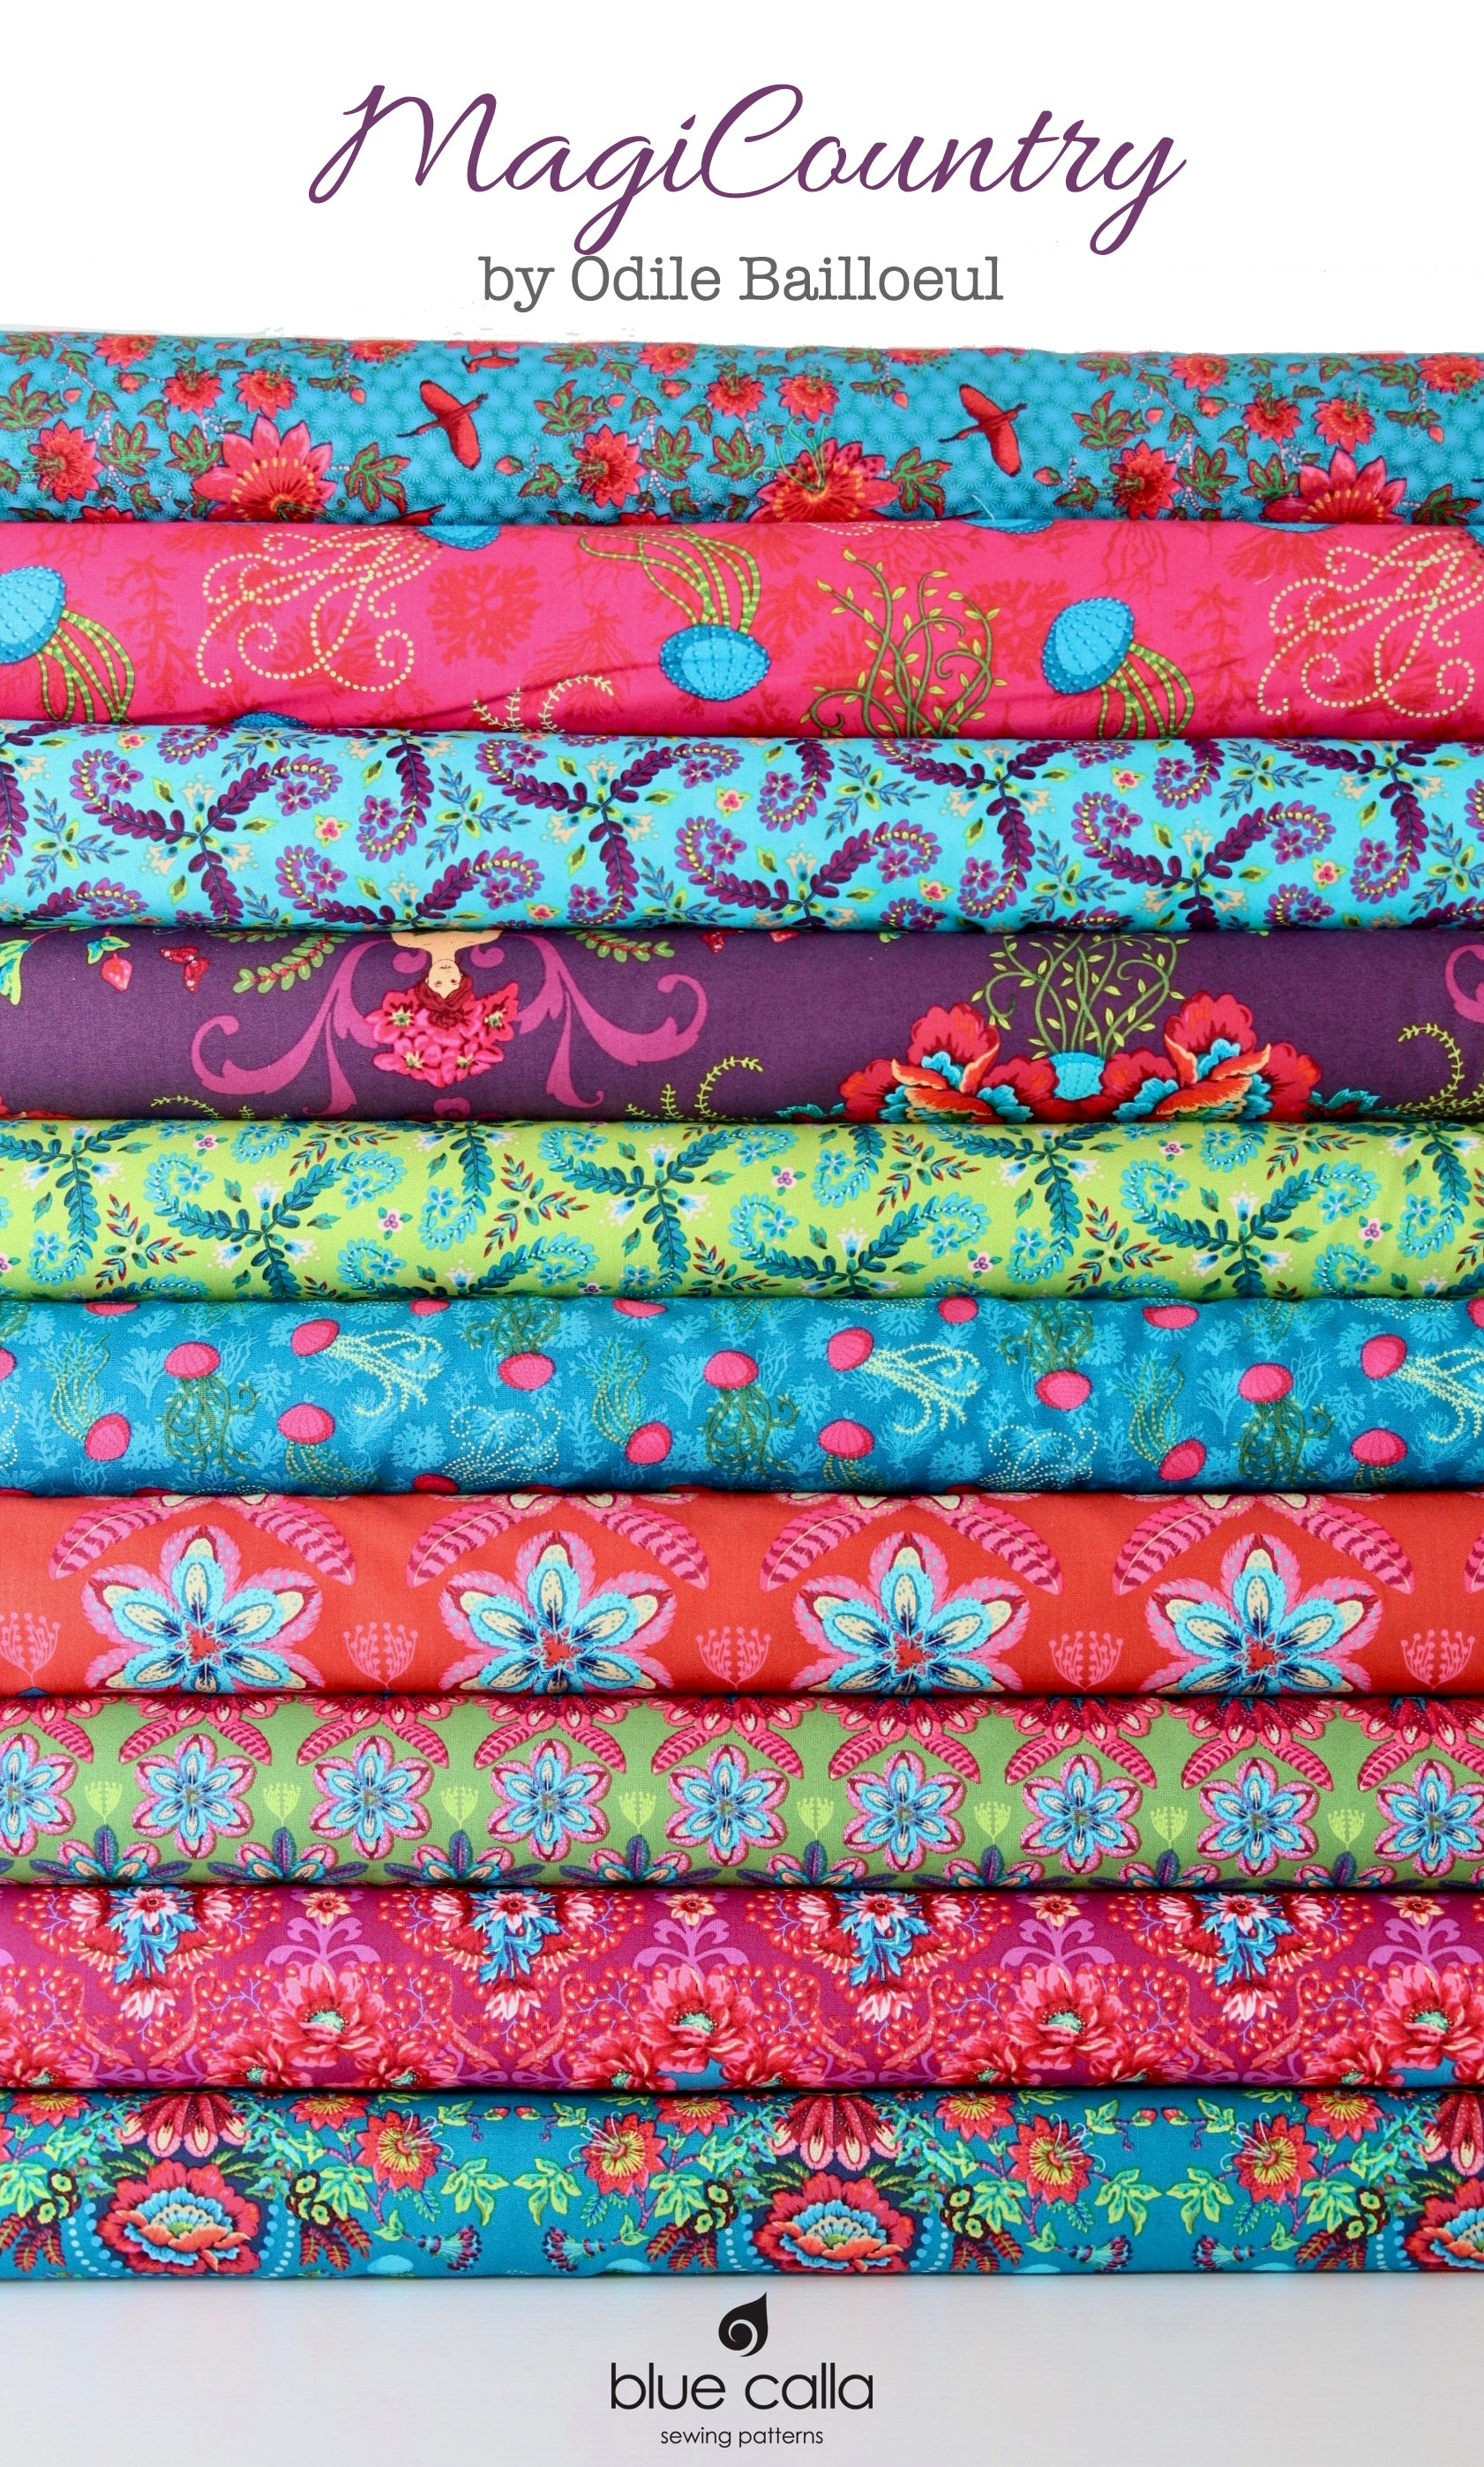 MagiCountry fabric collection